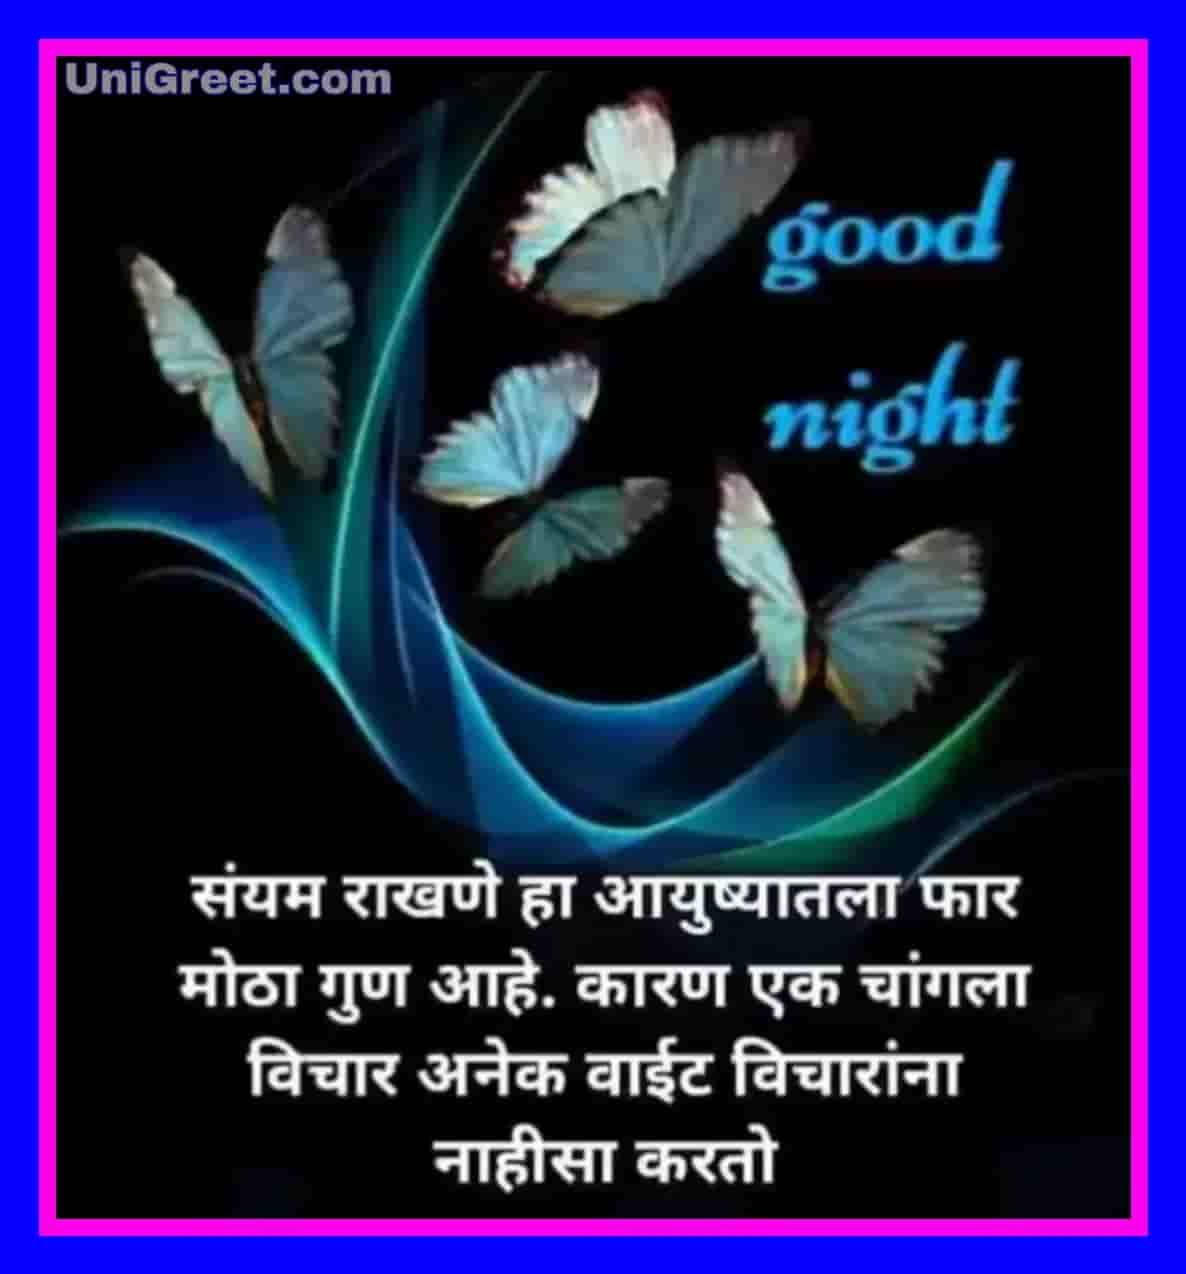 New Best Good Night Marathi Images Pictures Photos For Whatsapp Free Download